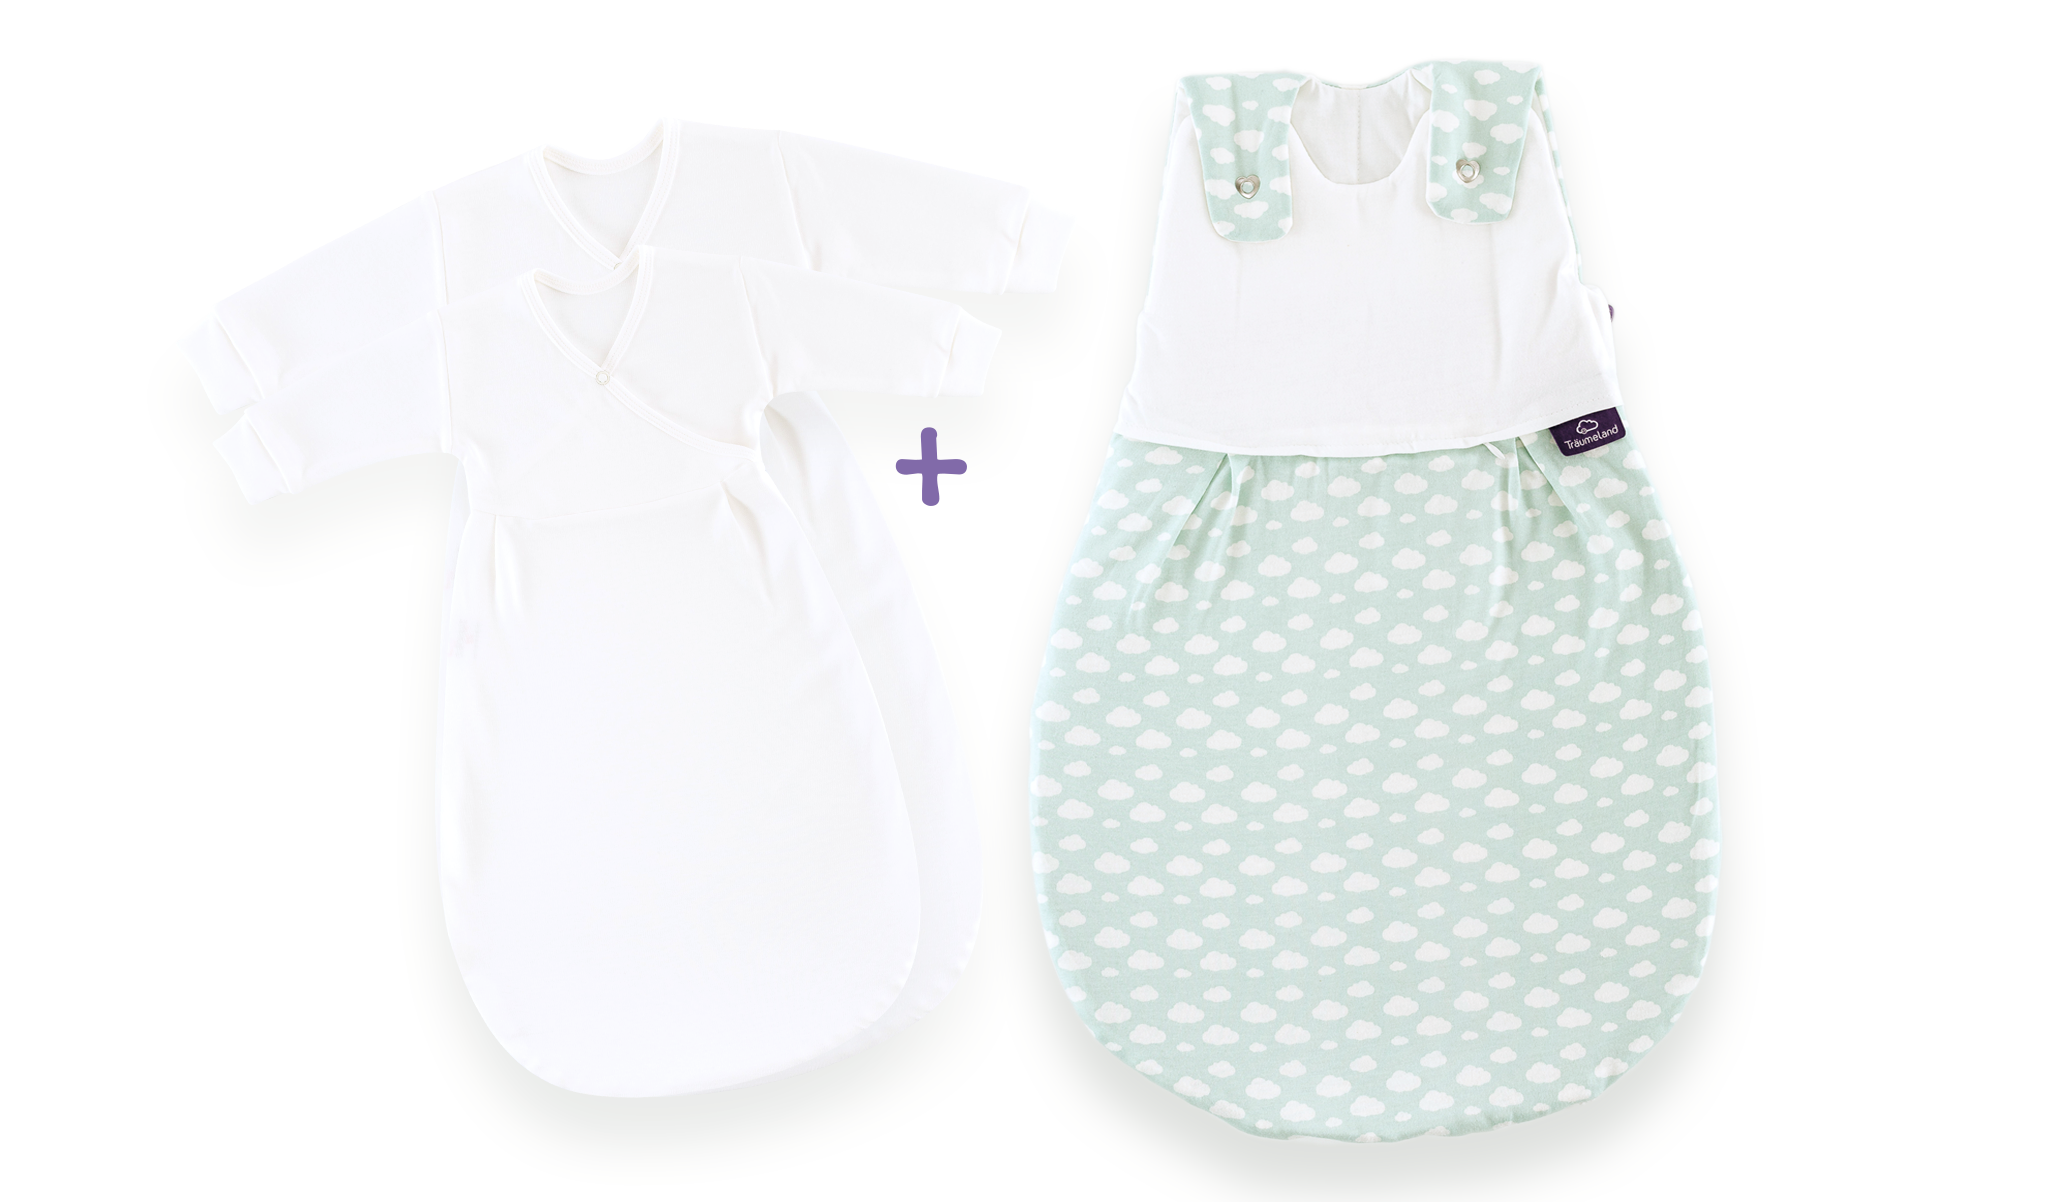 S0100653 - Cloud sleeping bag set in mint